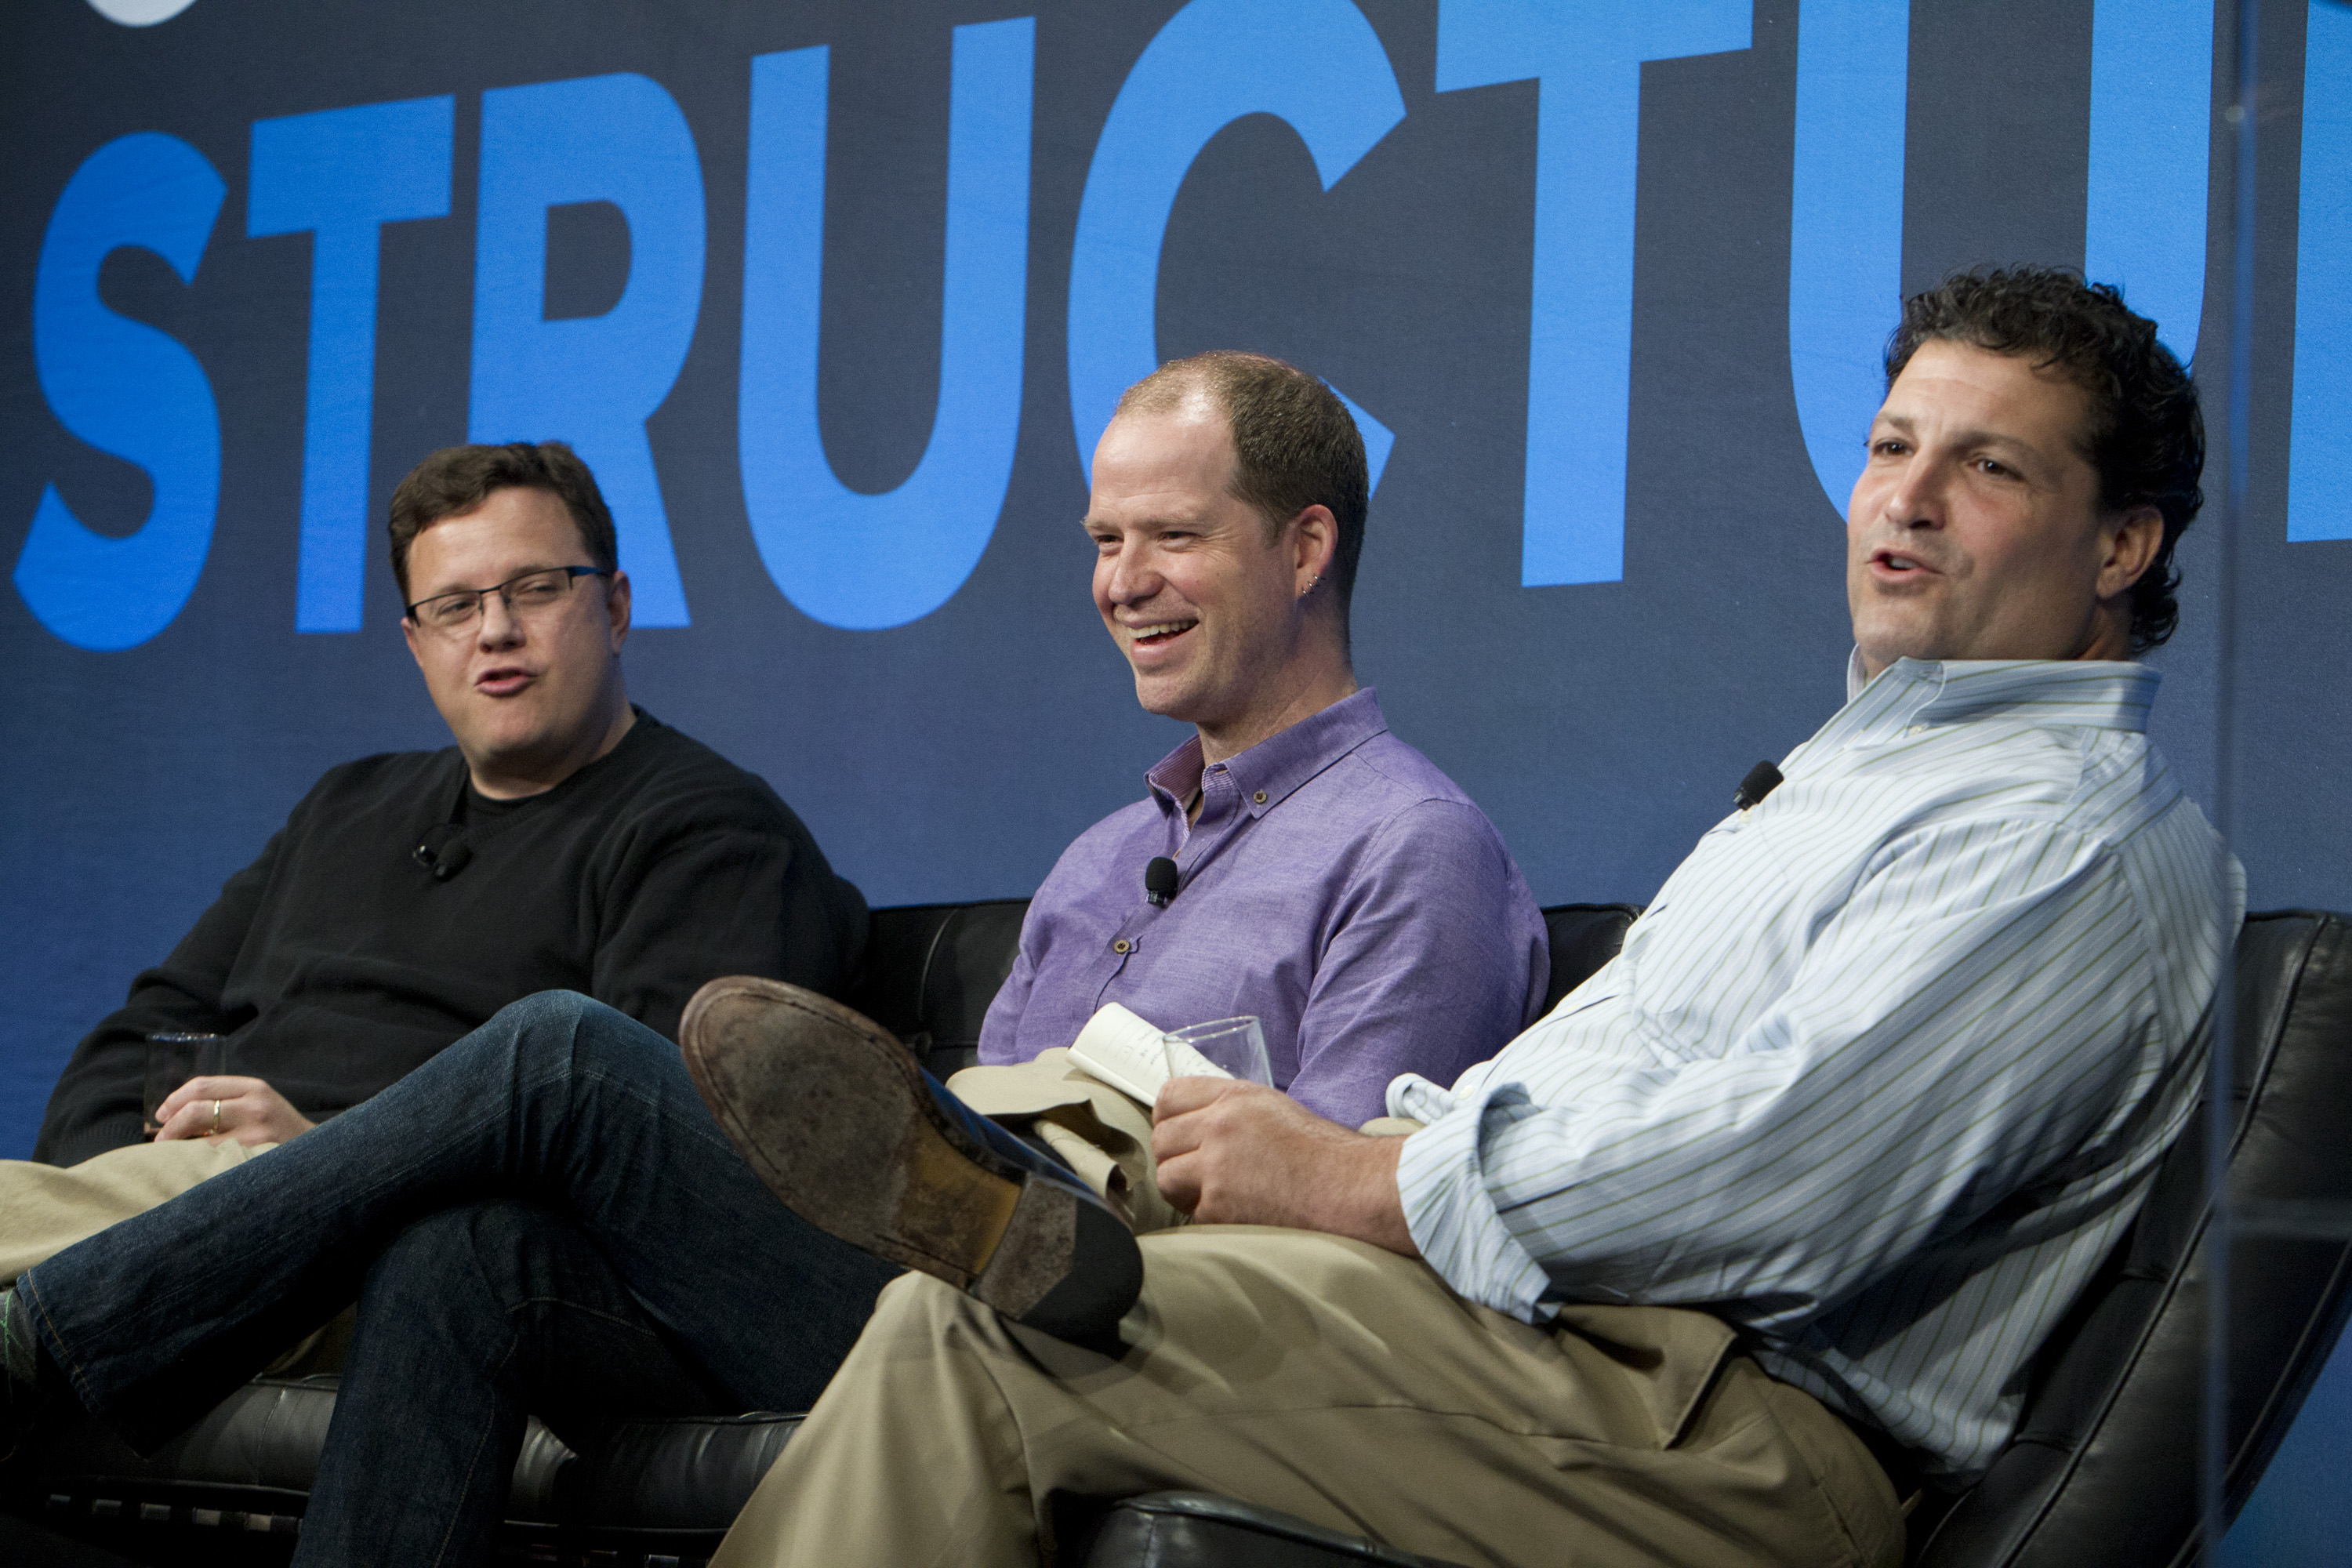 From L to R: Alexei Rodriguez, Evernote; Luke Kanies, Puppet Labs; Paul Santinelli, North Bridge Venture Partners